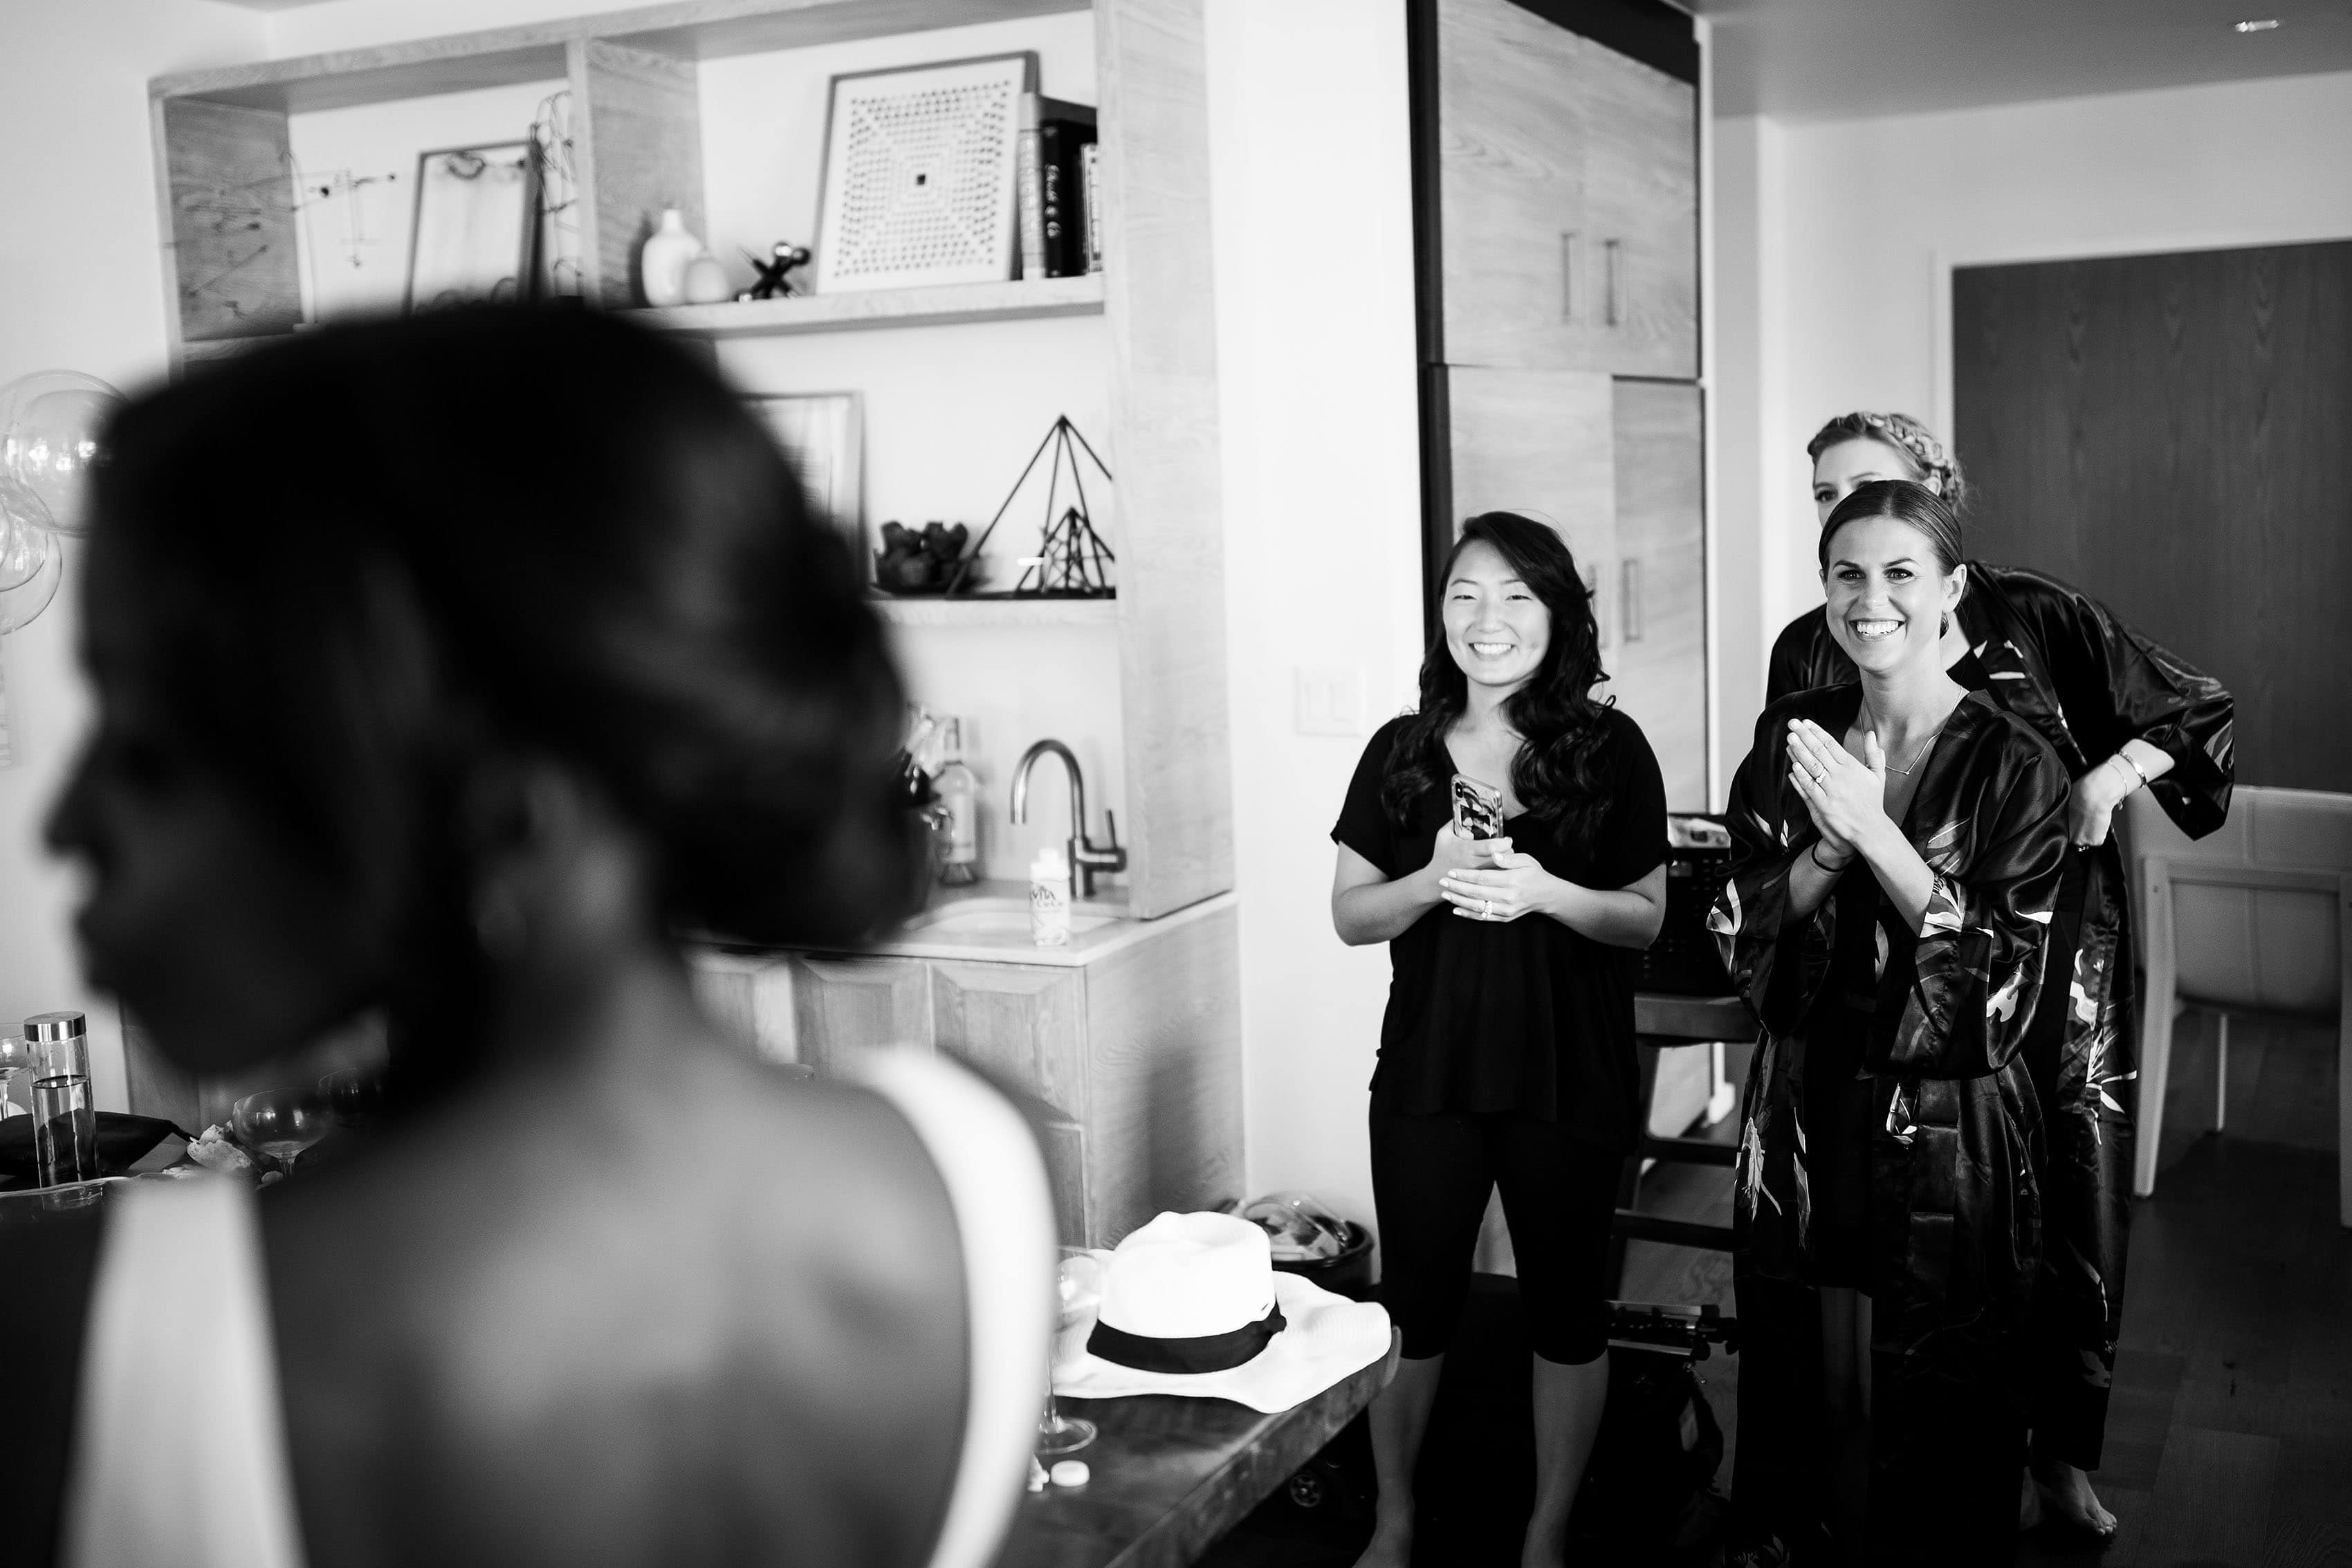 Bridesmaids react in the Halcyon Presidential Suite as the bride gets ready for the wedding